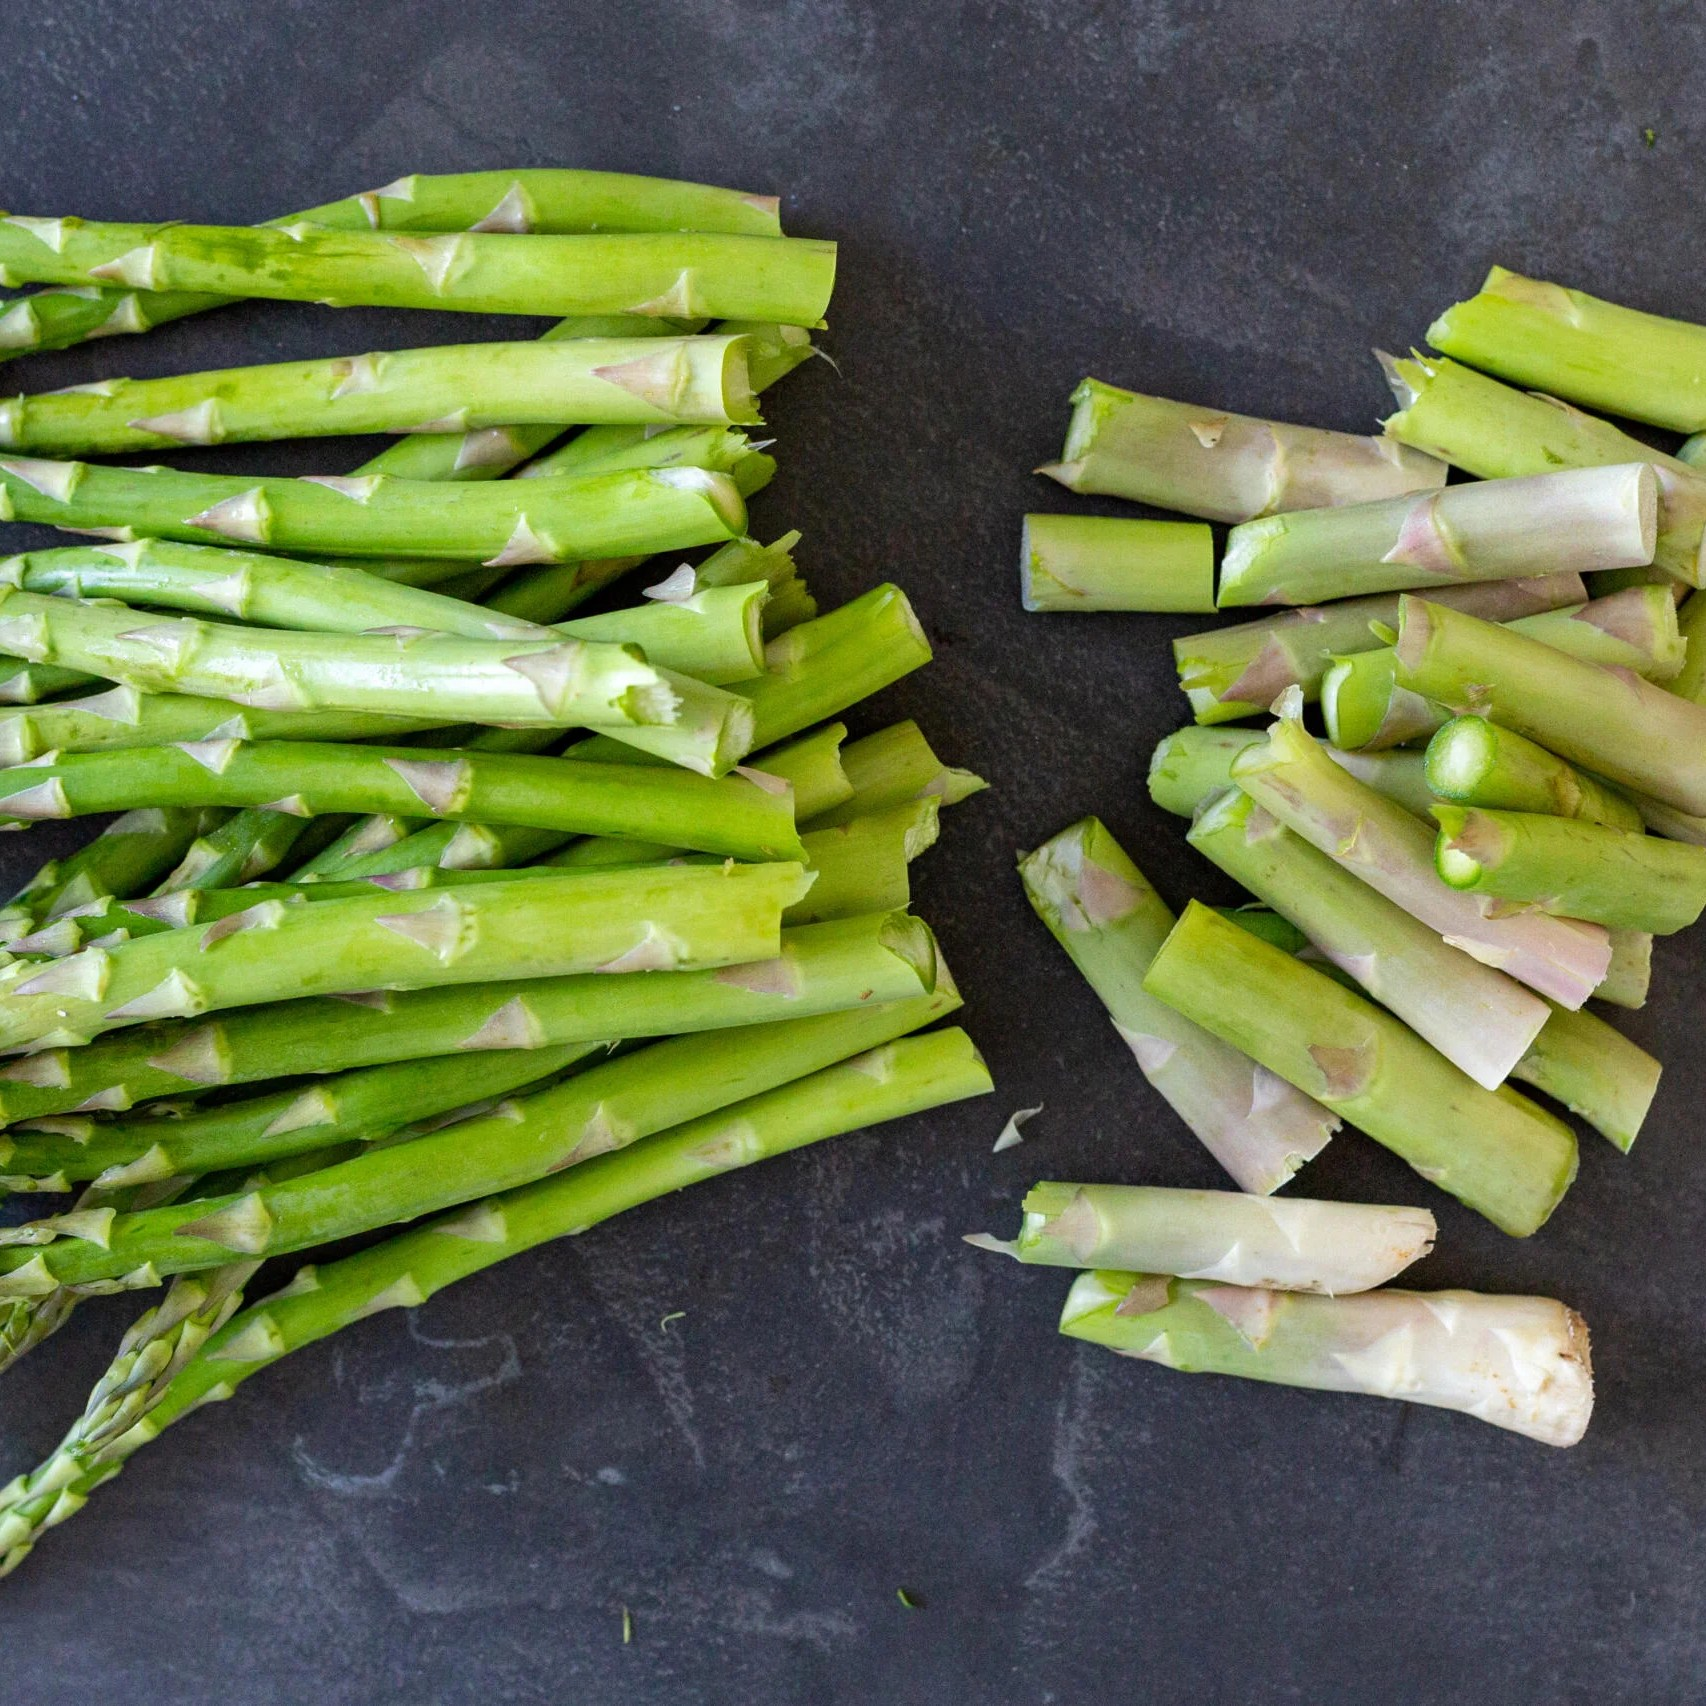 Asparagus with ends cut off